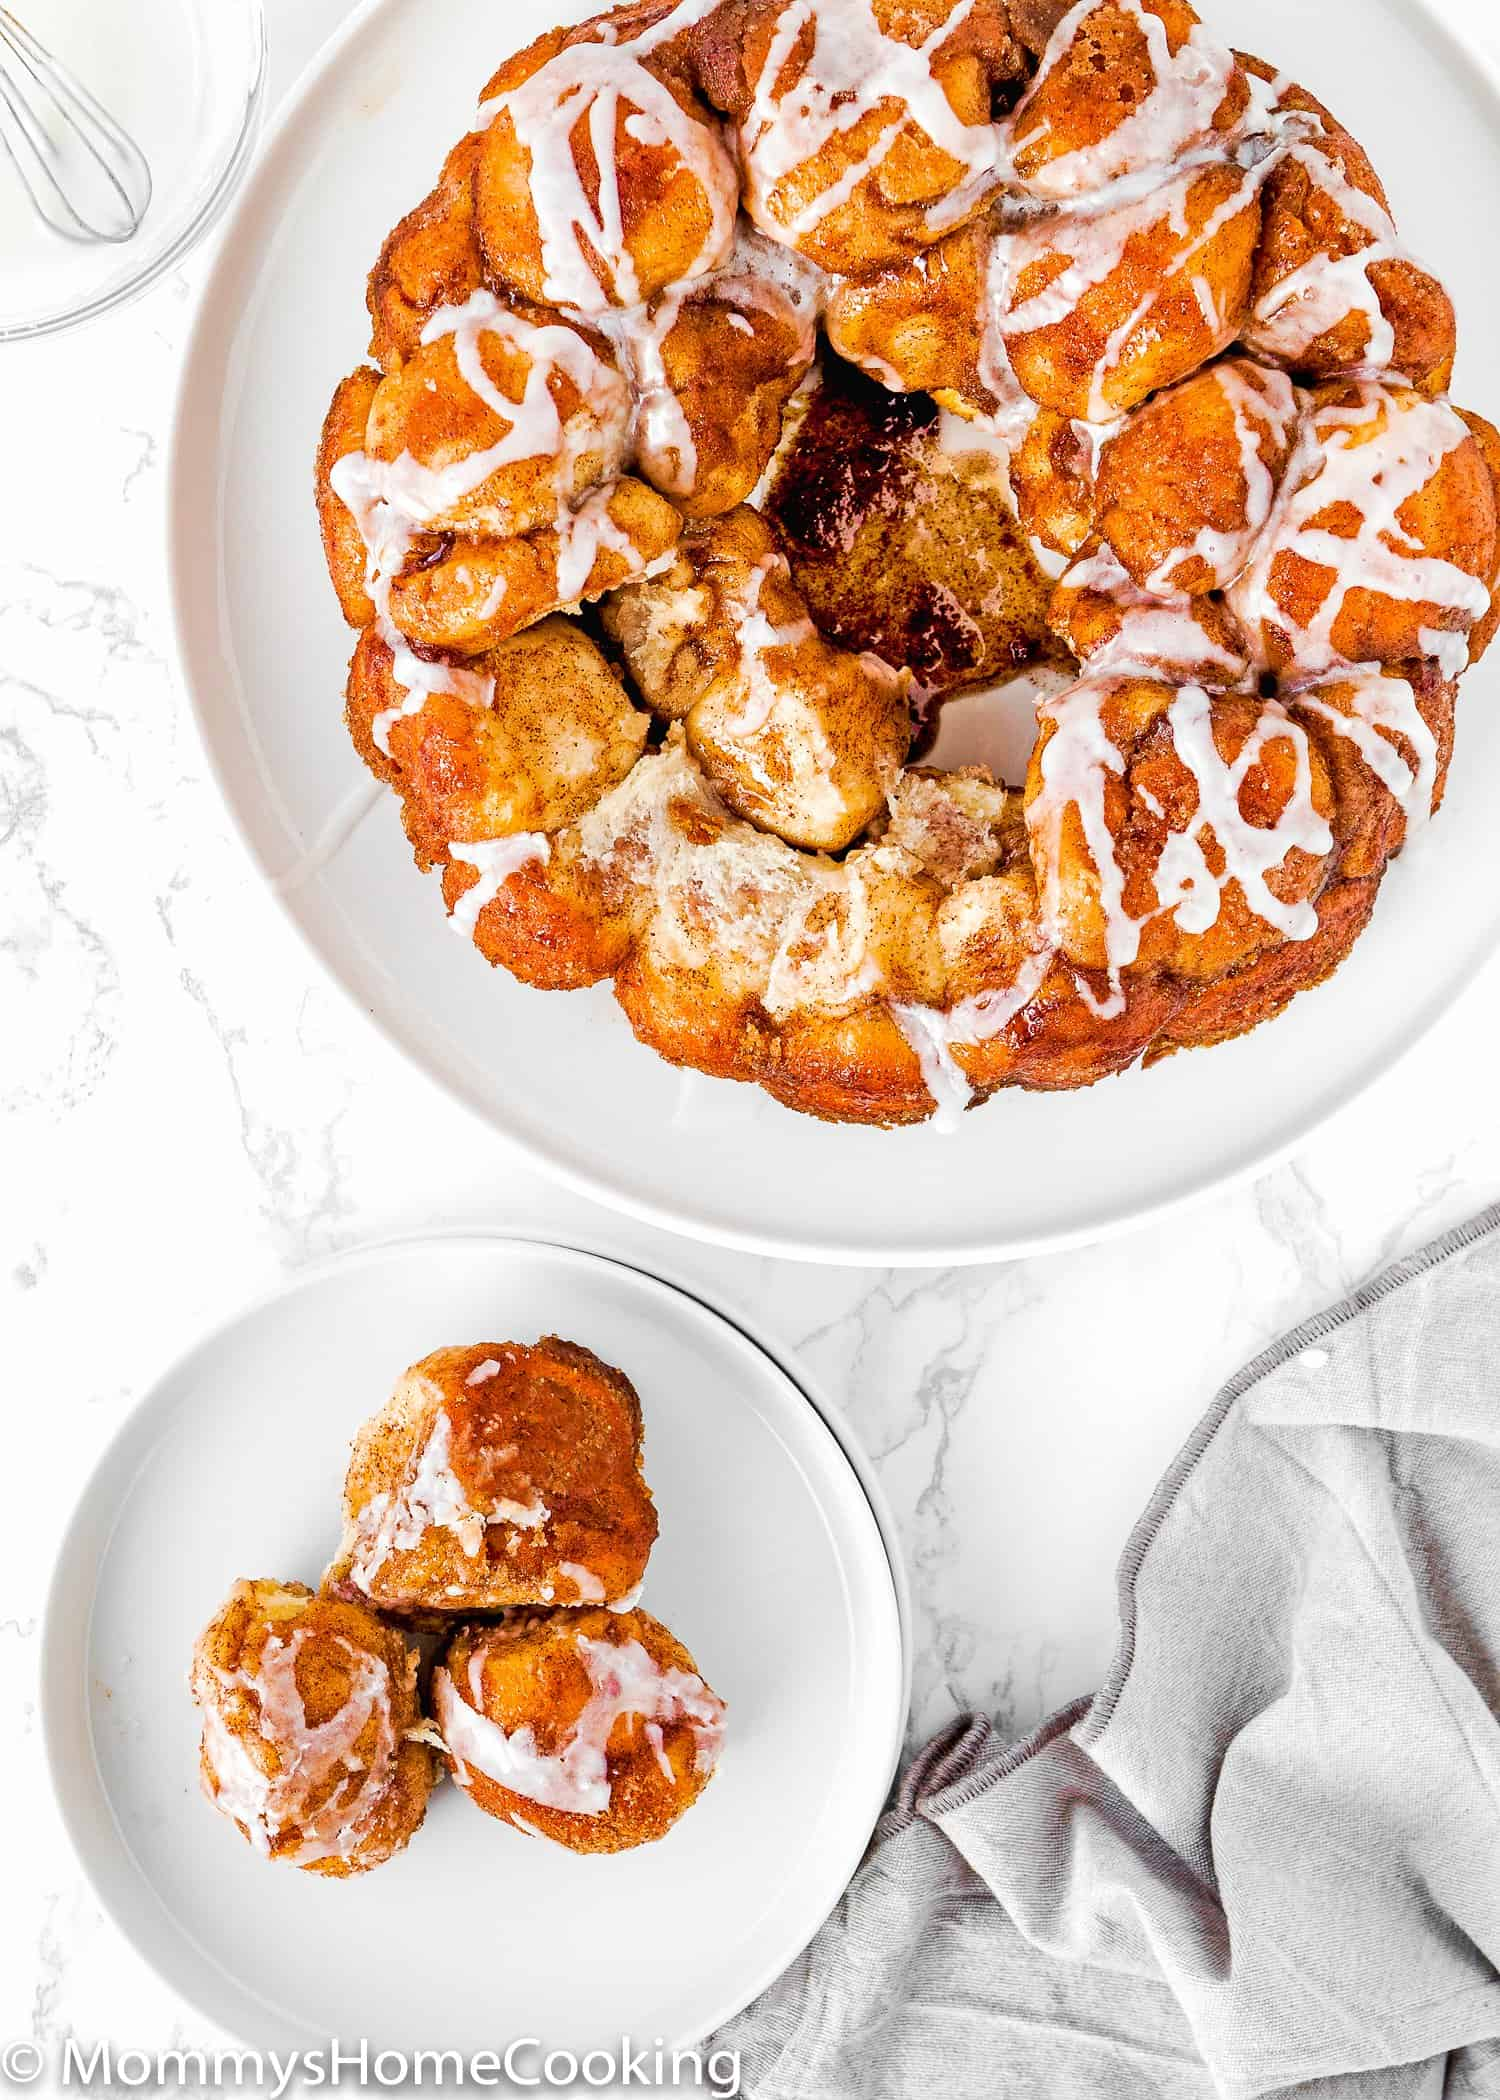 Homemade Eggless Monkey Bread over a marble surface